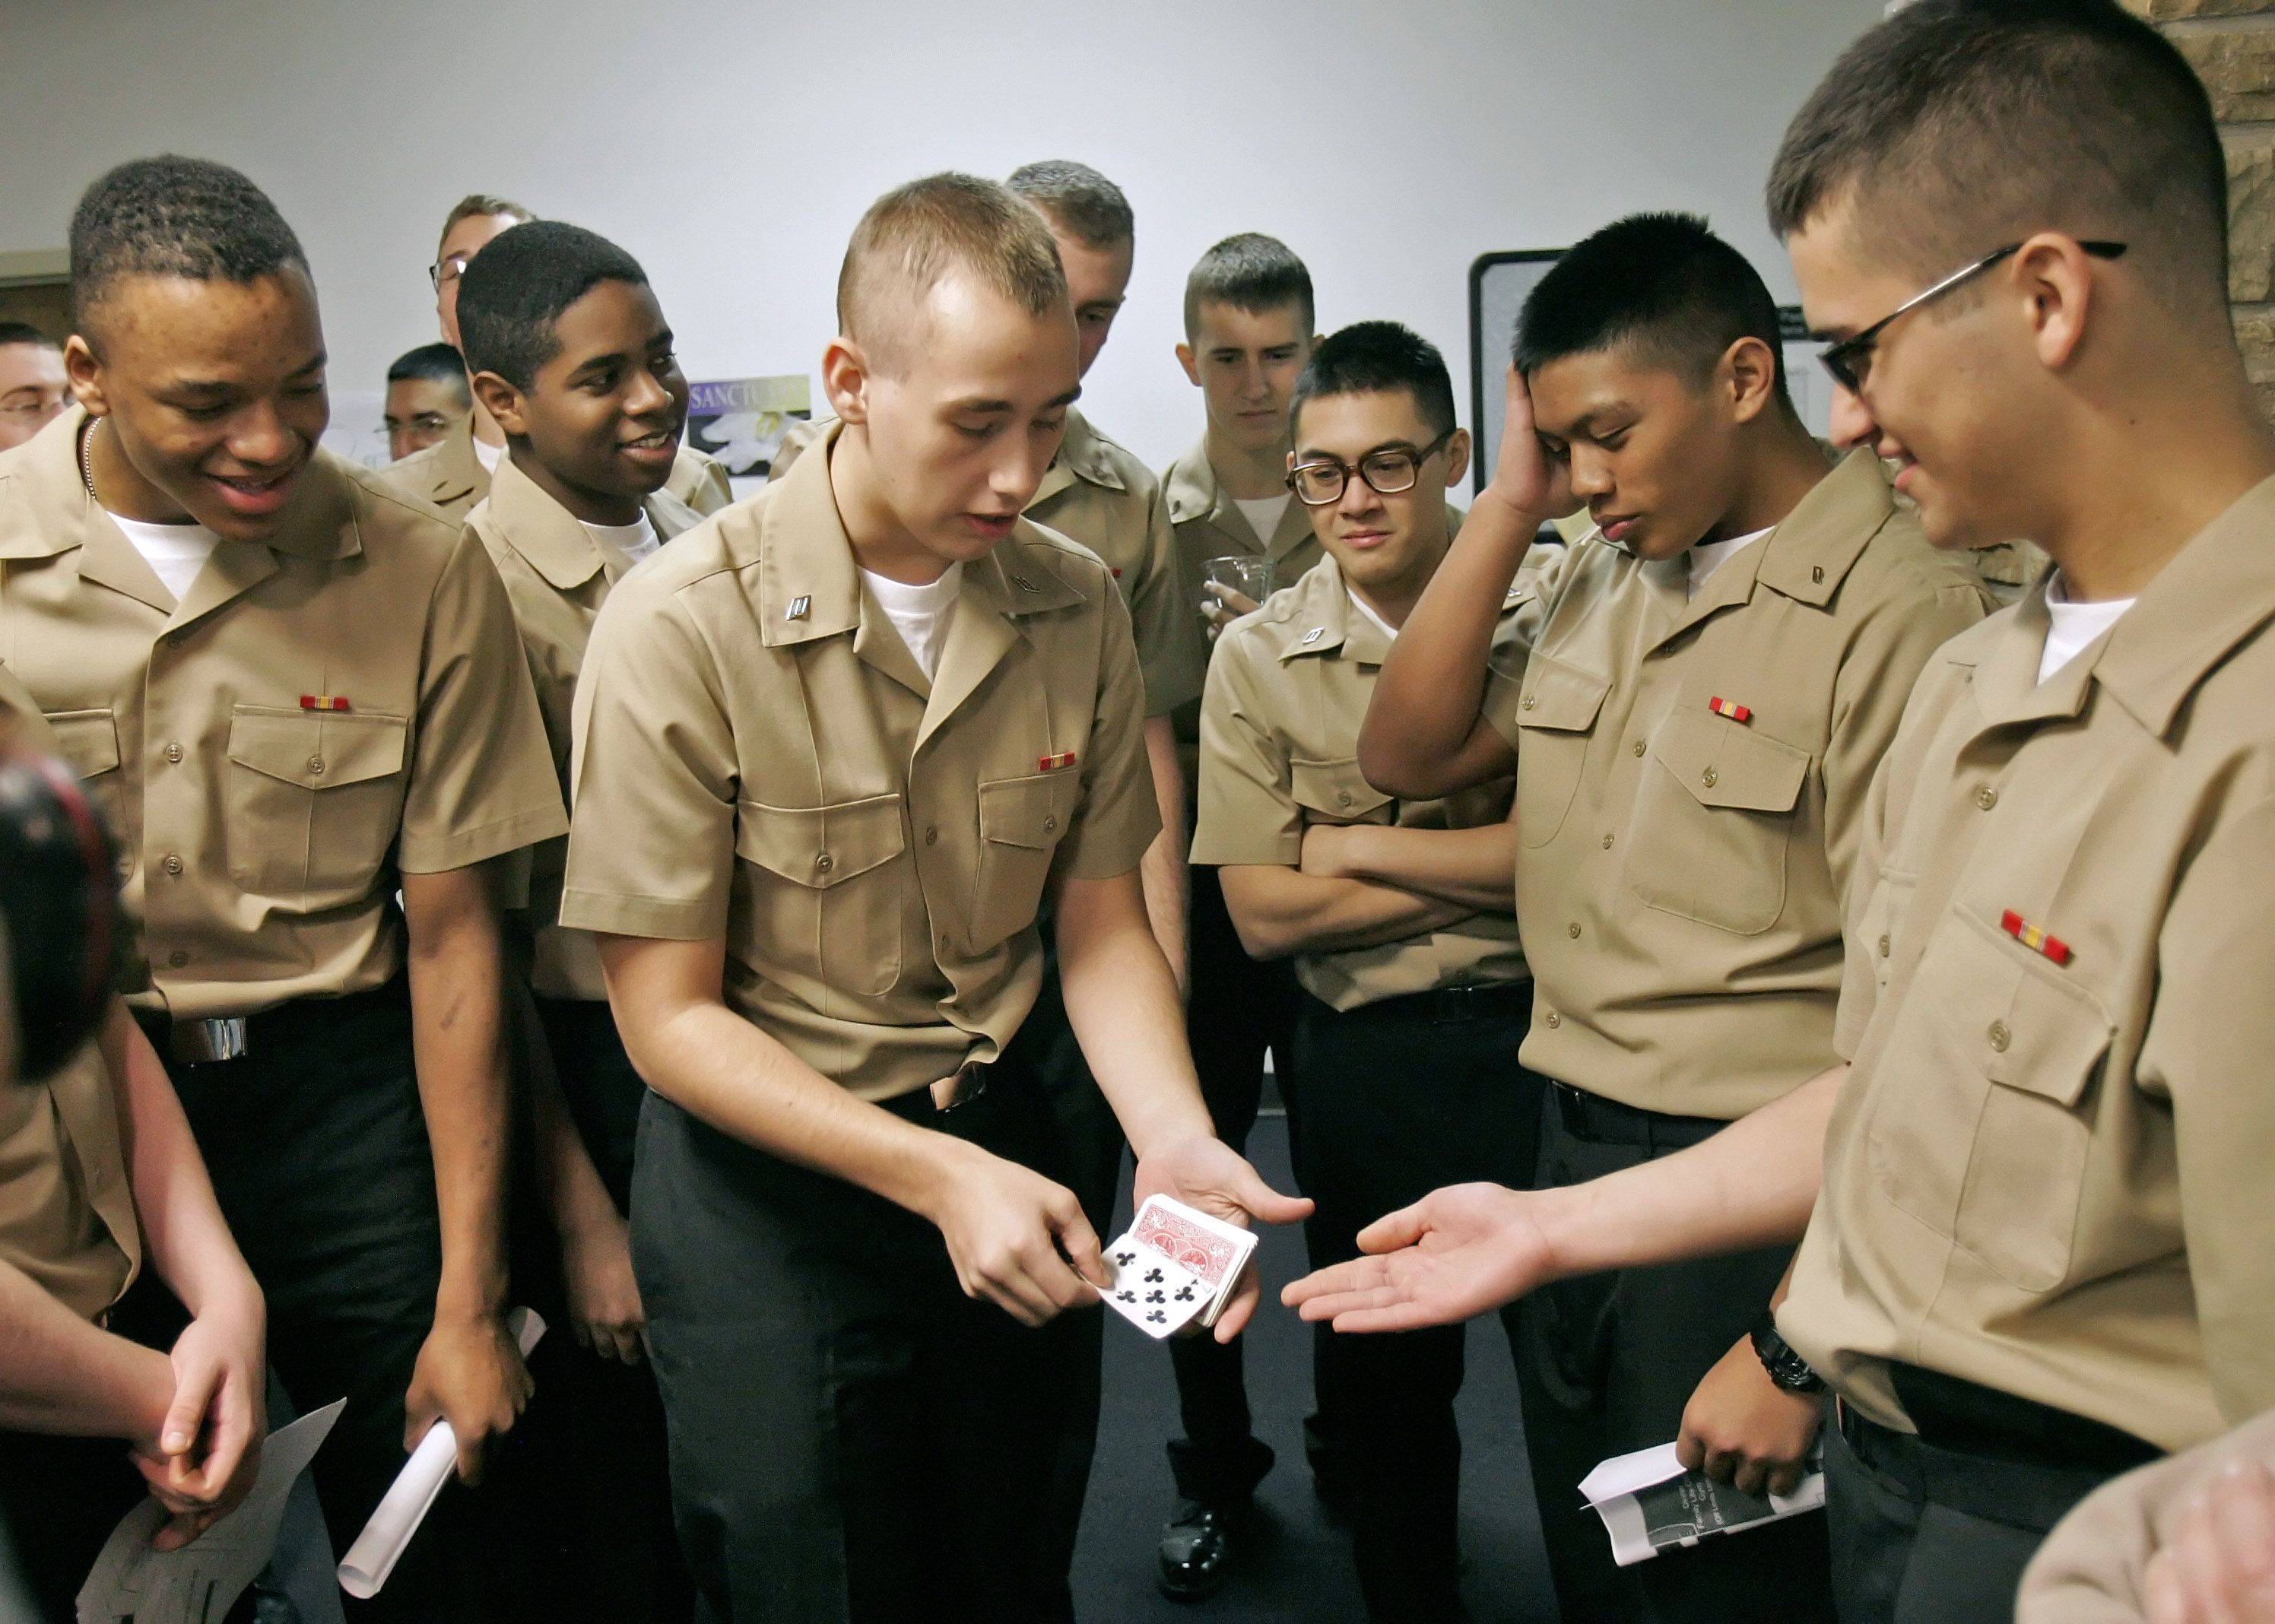 Matt Higgins of Pittsburg, Pennsylvania does some magic tricks for fellow recruits as the Gurnee Community Church hosted 193 sailors from Recruit Training Command, Great Lakes for Thankgiving dinner Thursday afternoon in Gurnee.